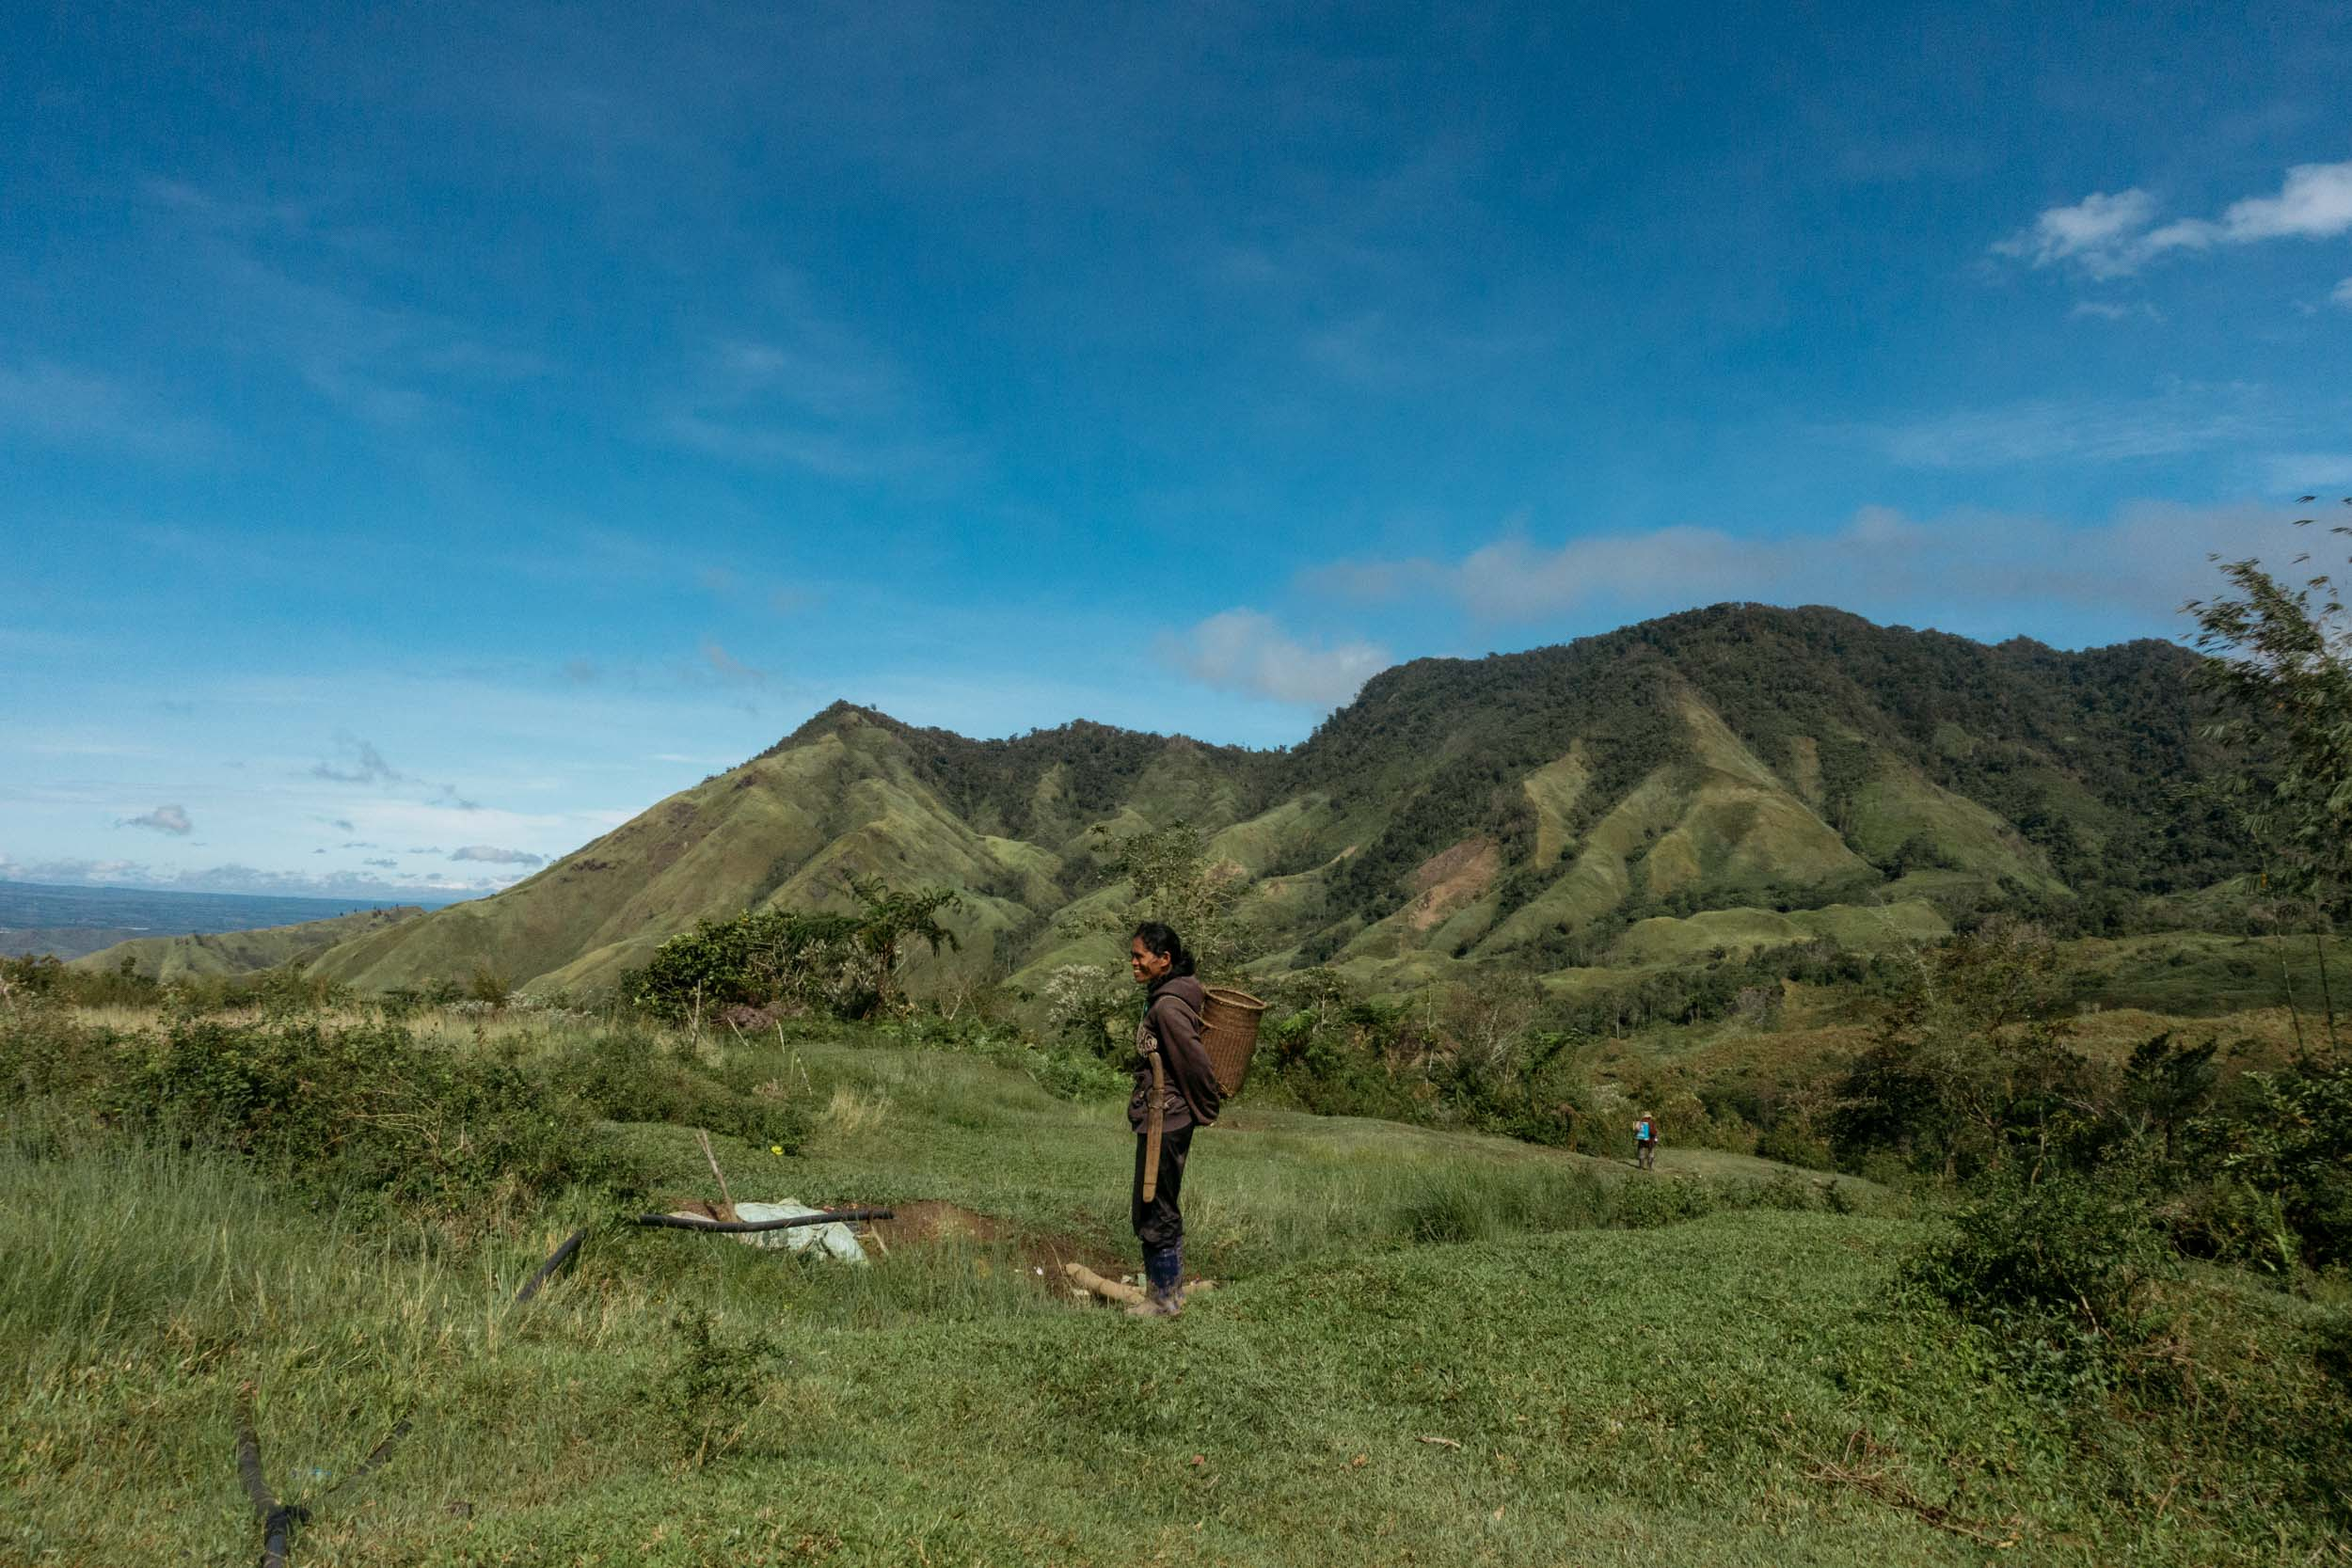 The community of Sitio Manalog, Bukidnon composed of 222 households take pleasure in being surrounded by the mountainous view of Mt. Kitanglad rage.